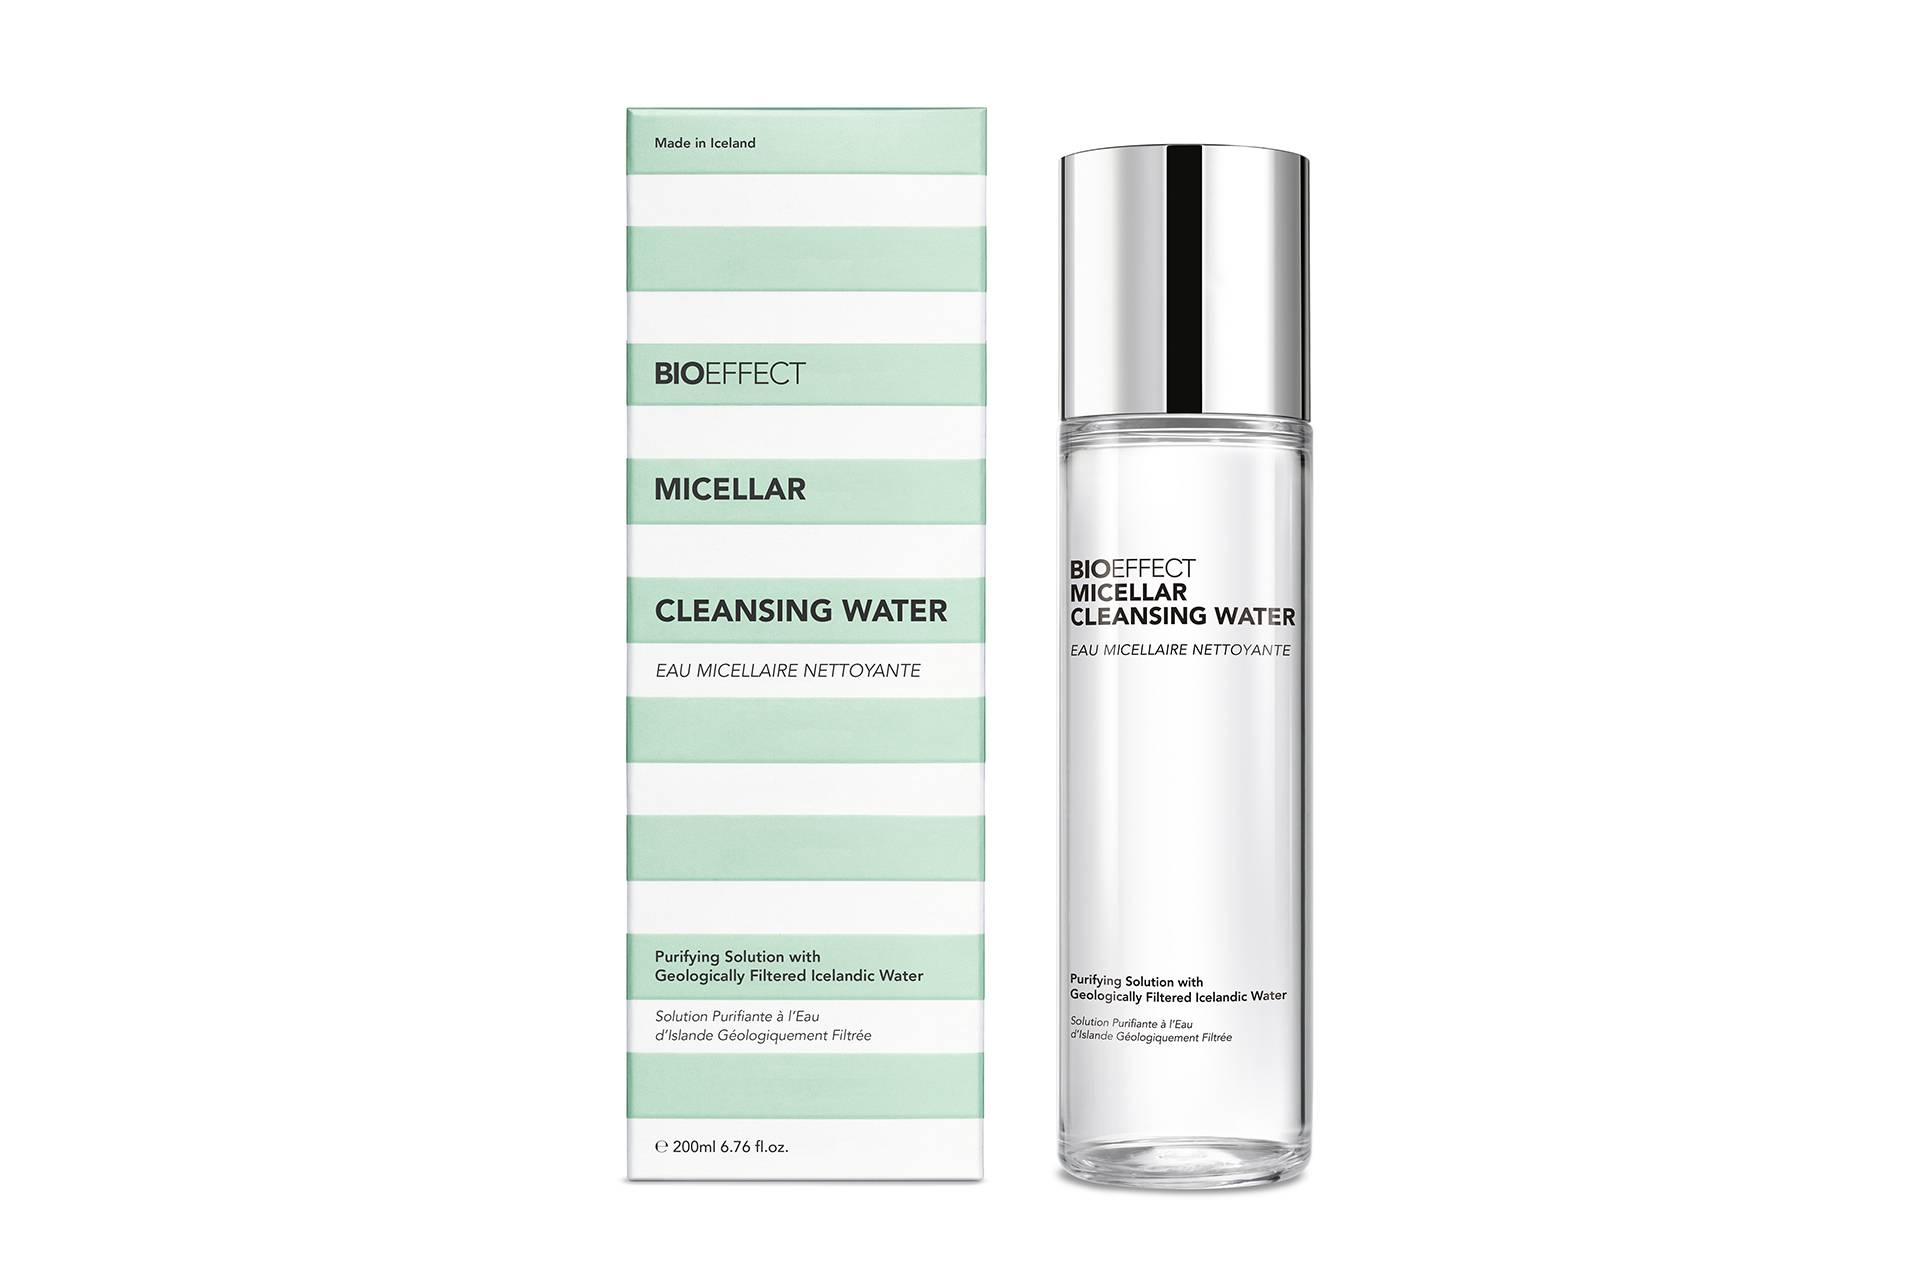 Micellar Water: What Is The Best